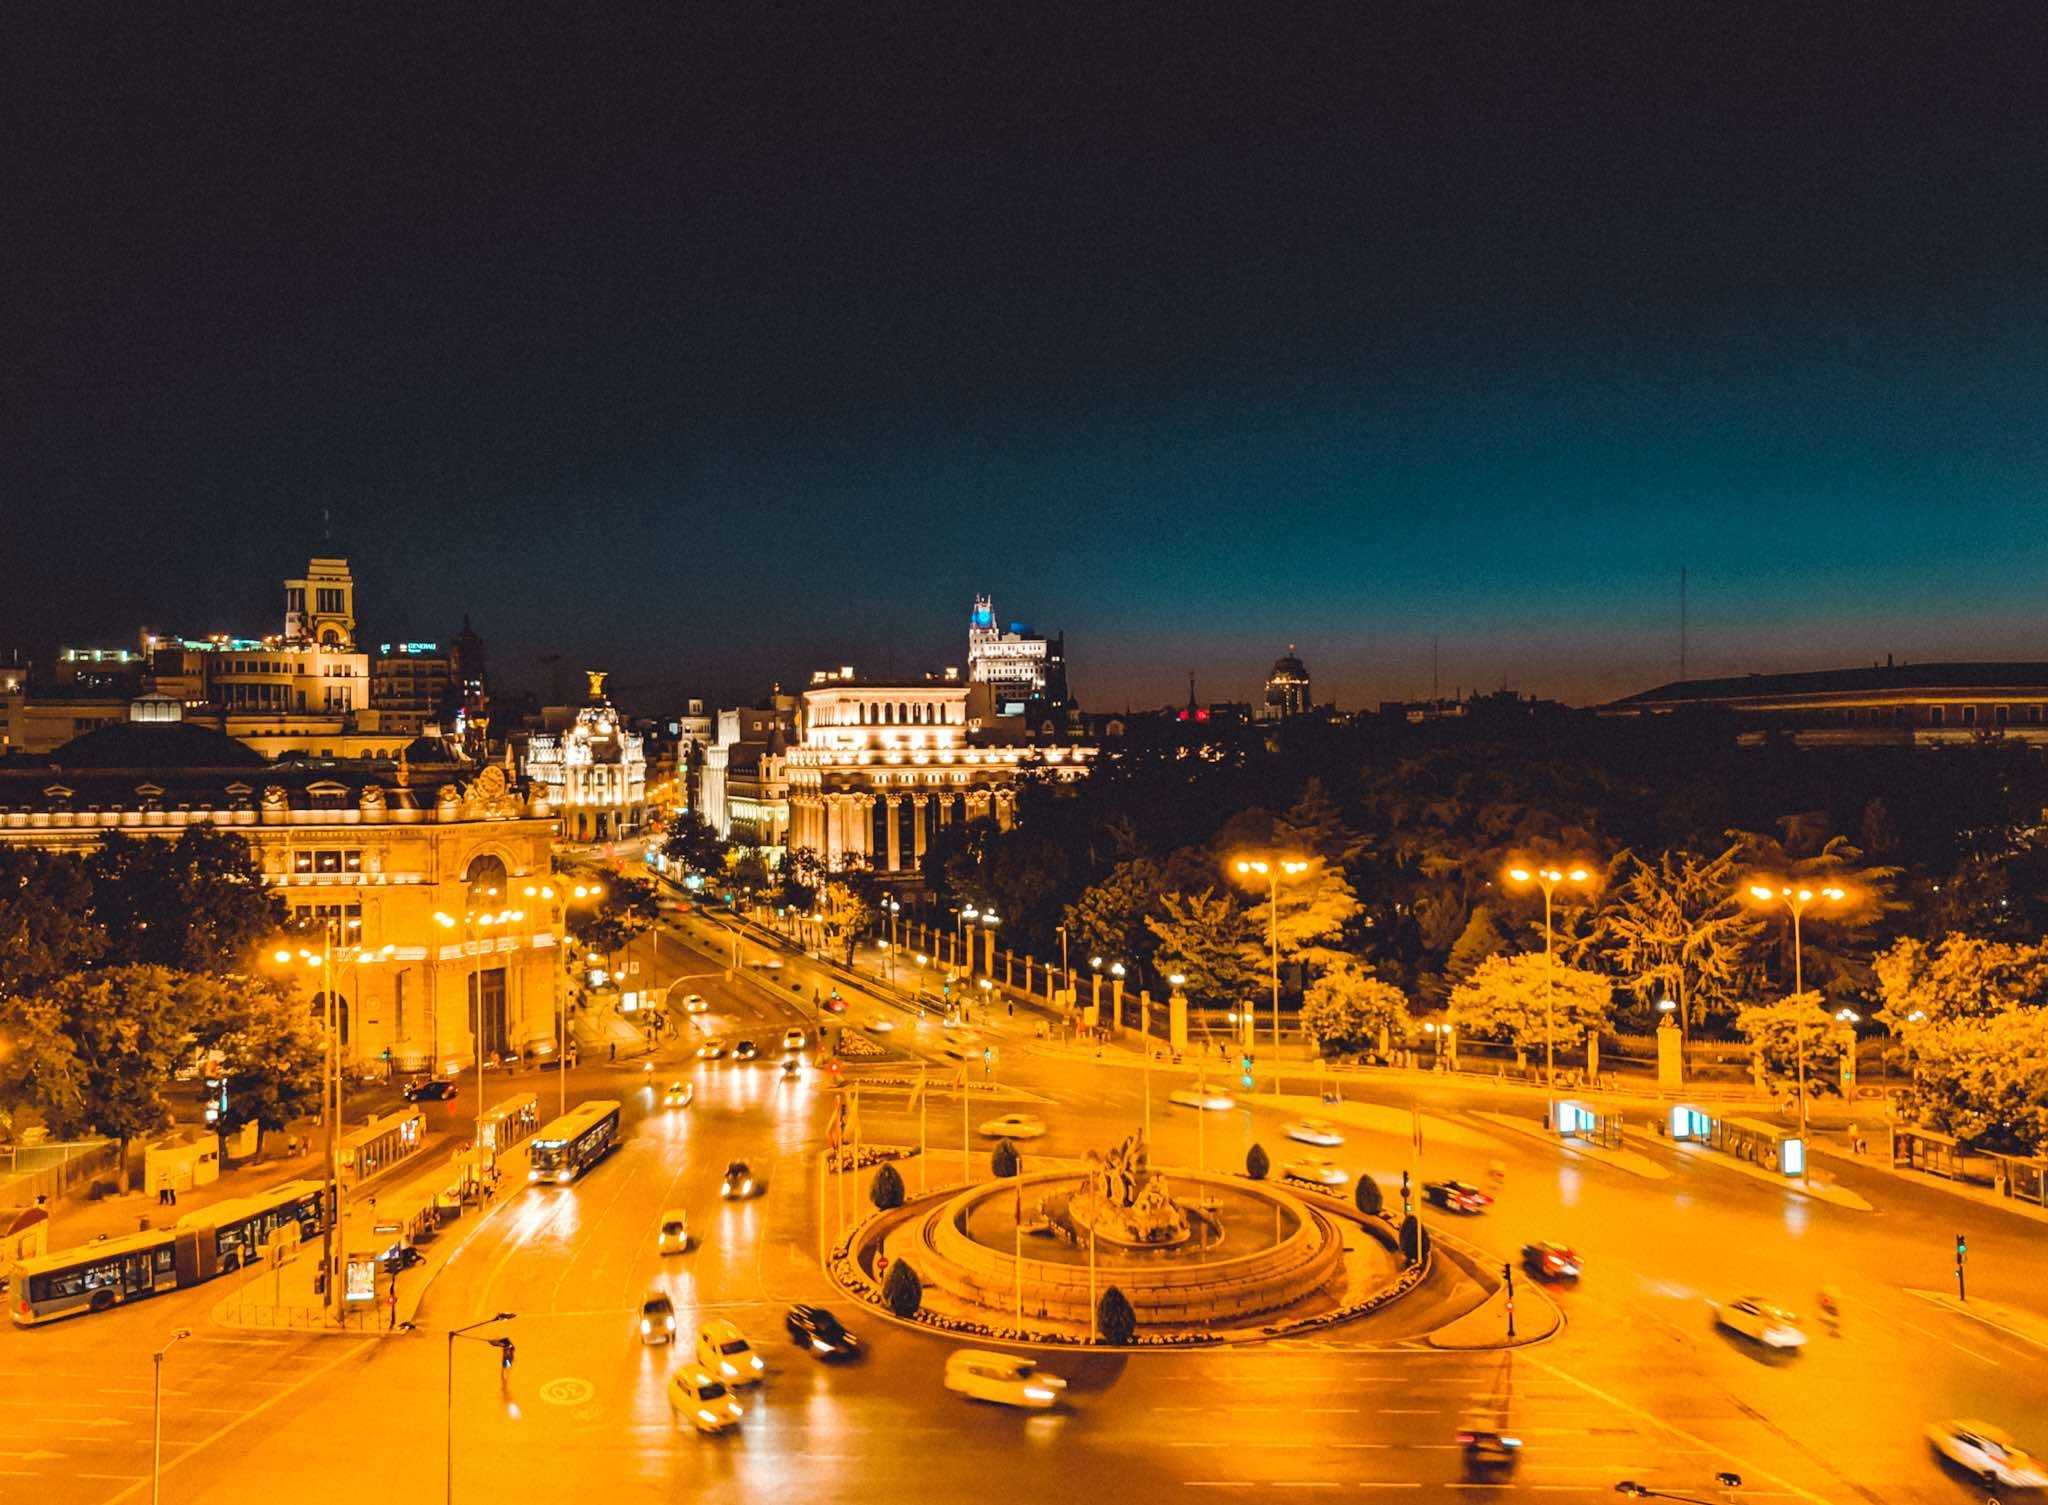 Madrid Travel Guide: 48 Buzzing Hours Of Tapas, Sights, Vino And More